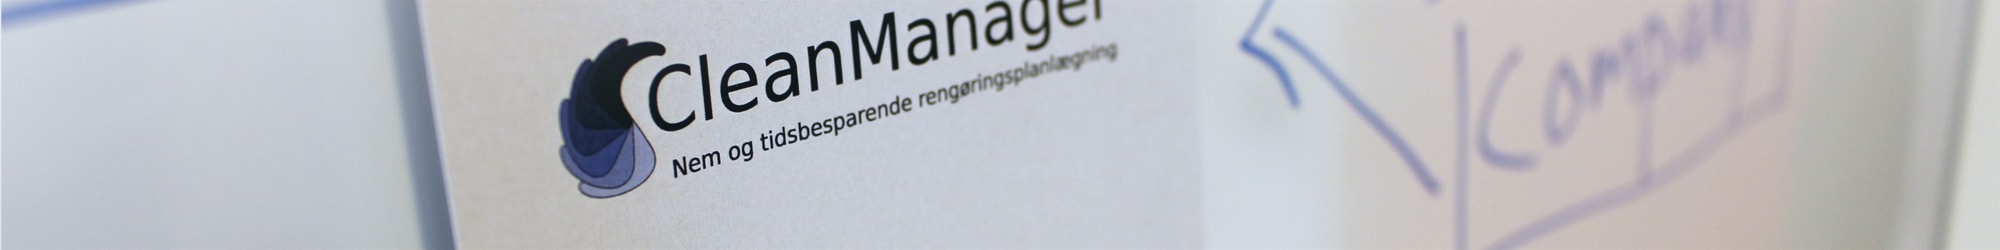 CleanManager logo på whiteboard